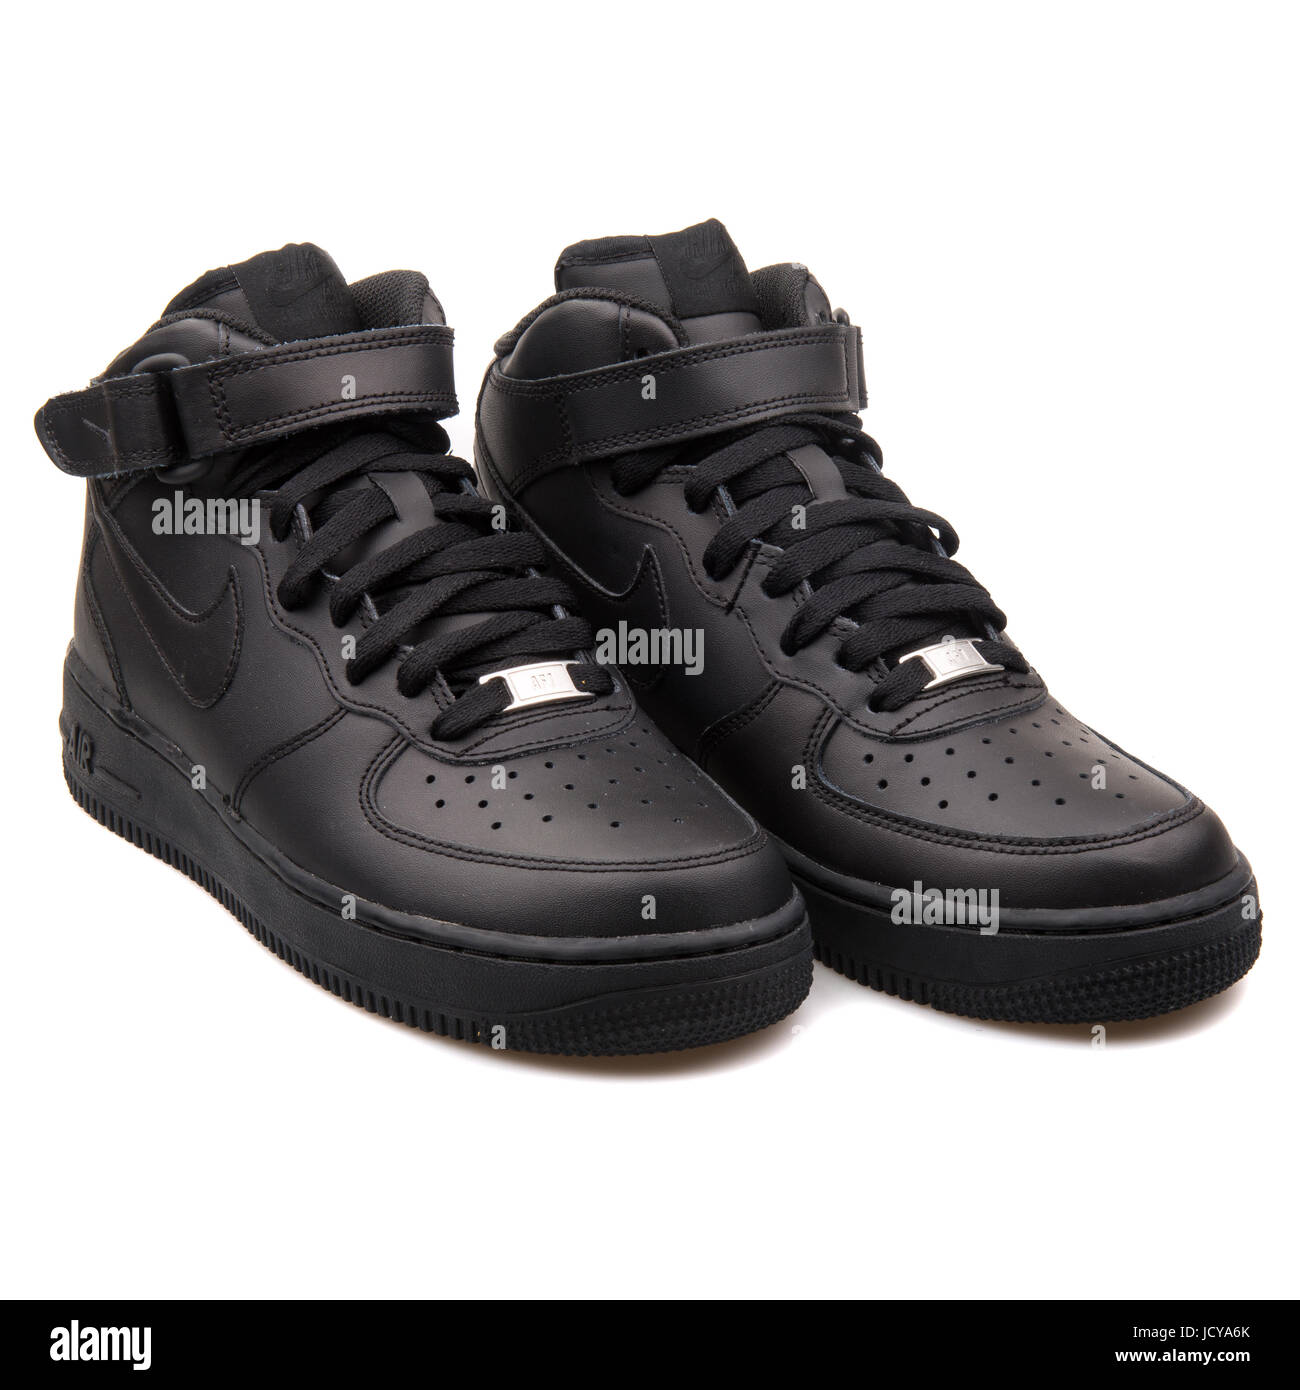 brand new f6f9a 6bbd6 Nike Air Force 1 Mid (GS) Black Youth s Sports Shoes - 314195-004